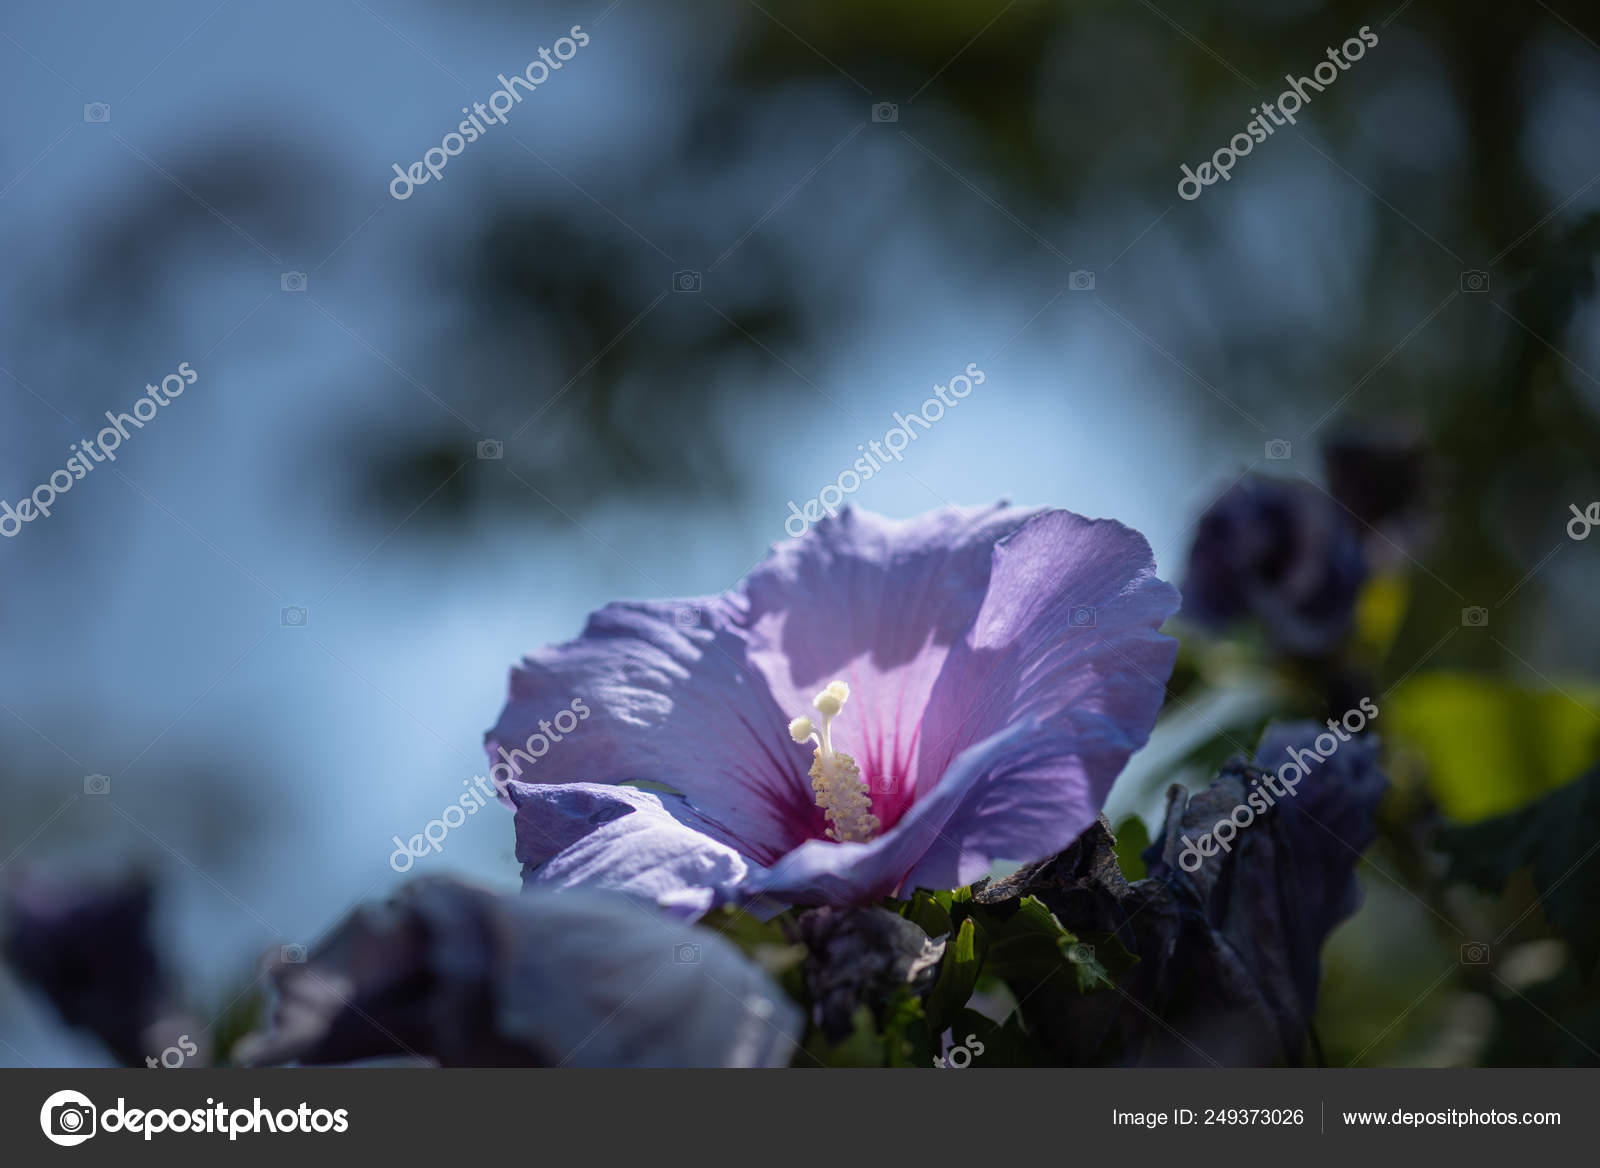 Colorful Outdoor Natural Floral Close Image Single Blue Violet